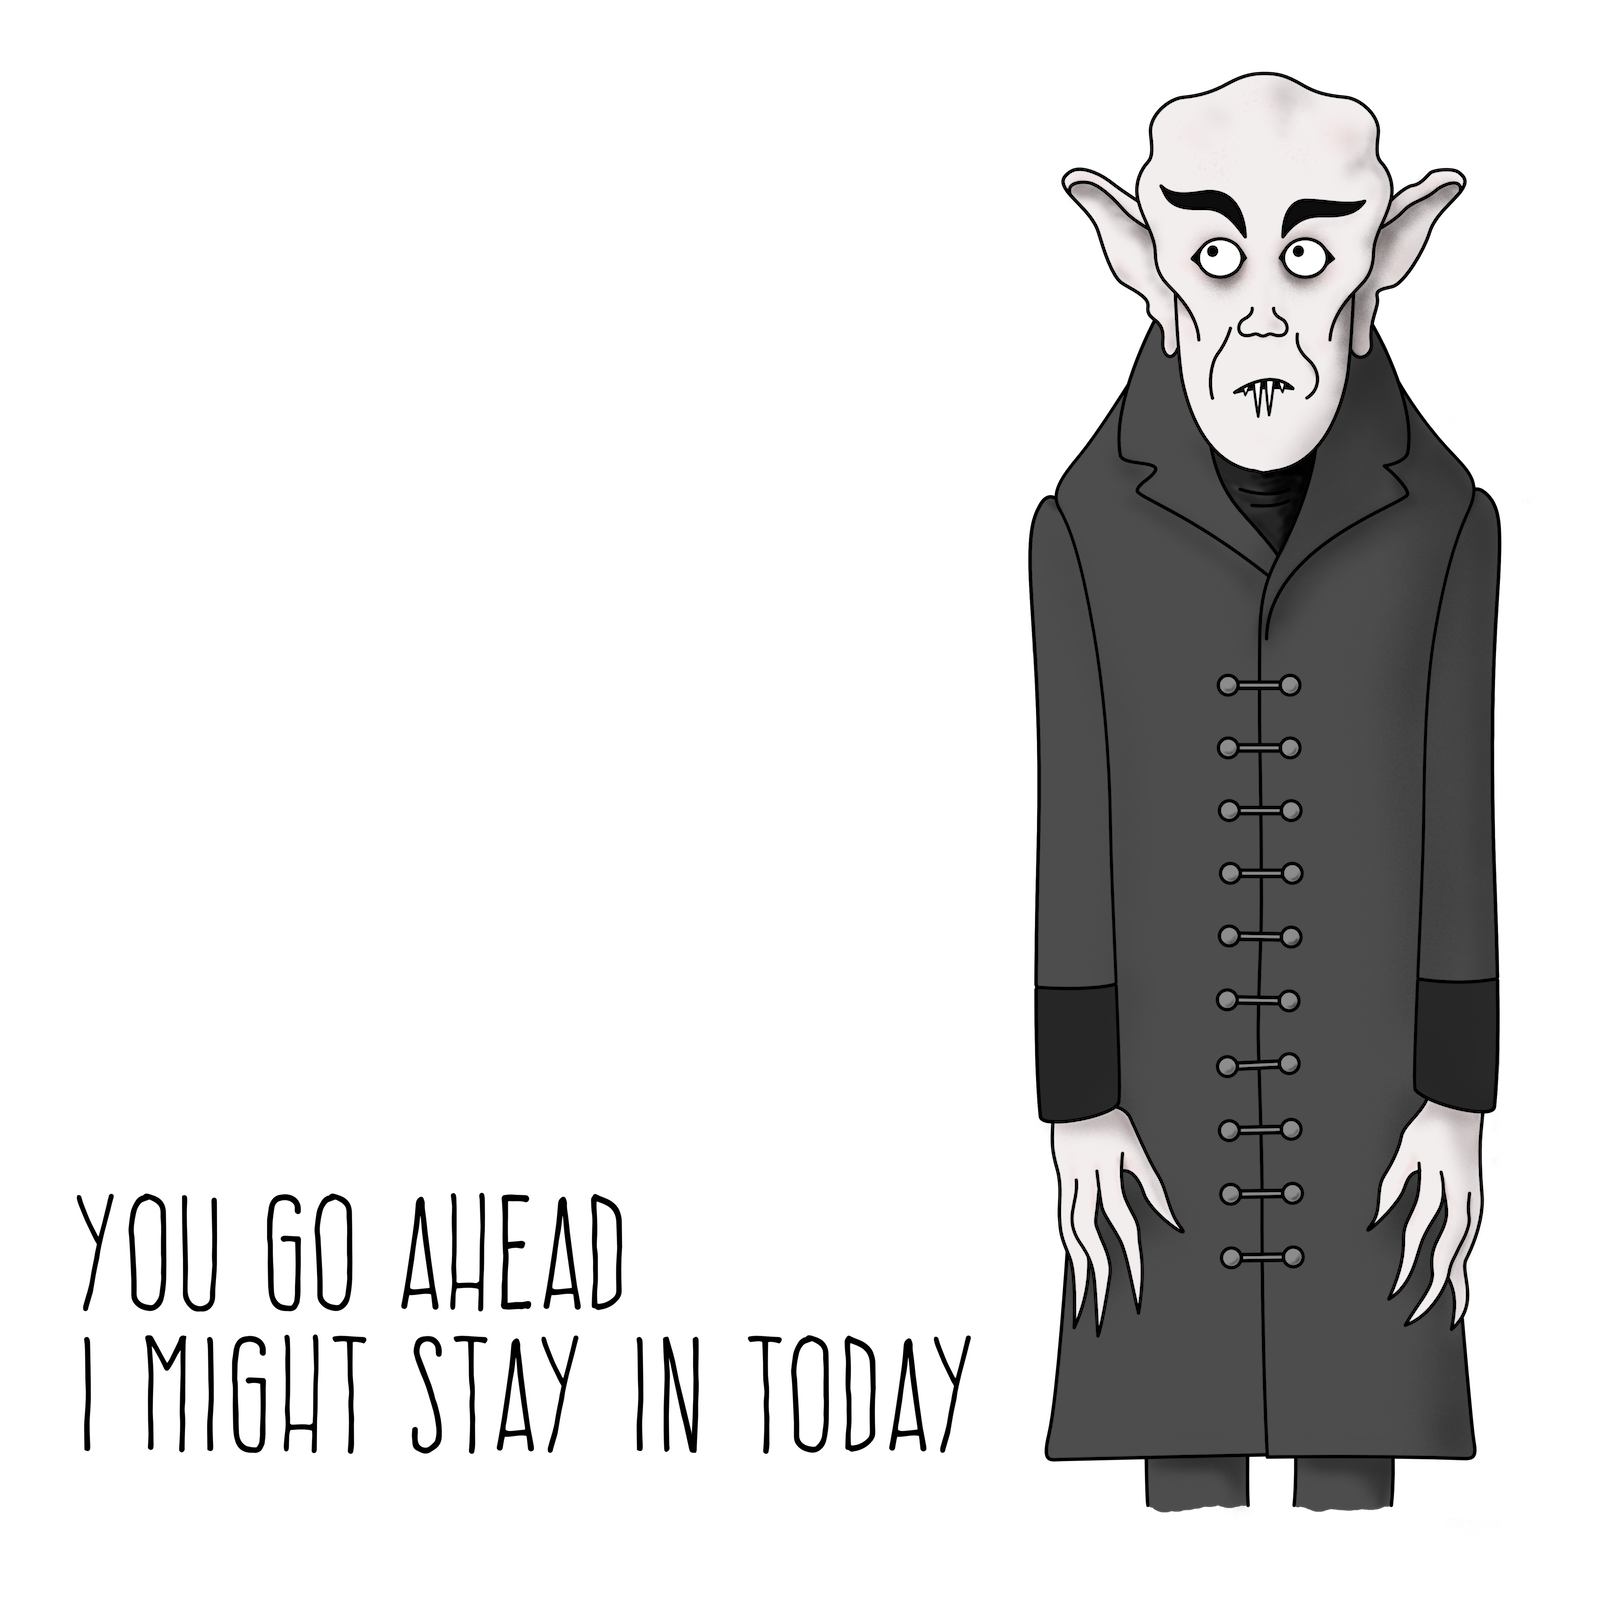 Nosferatu the vampire/vampyre says stay indoors. Get it on a T-shirt. Or mug. Or phone case. Or…